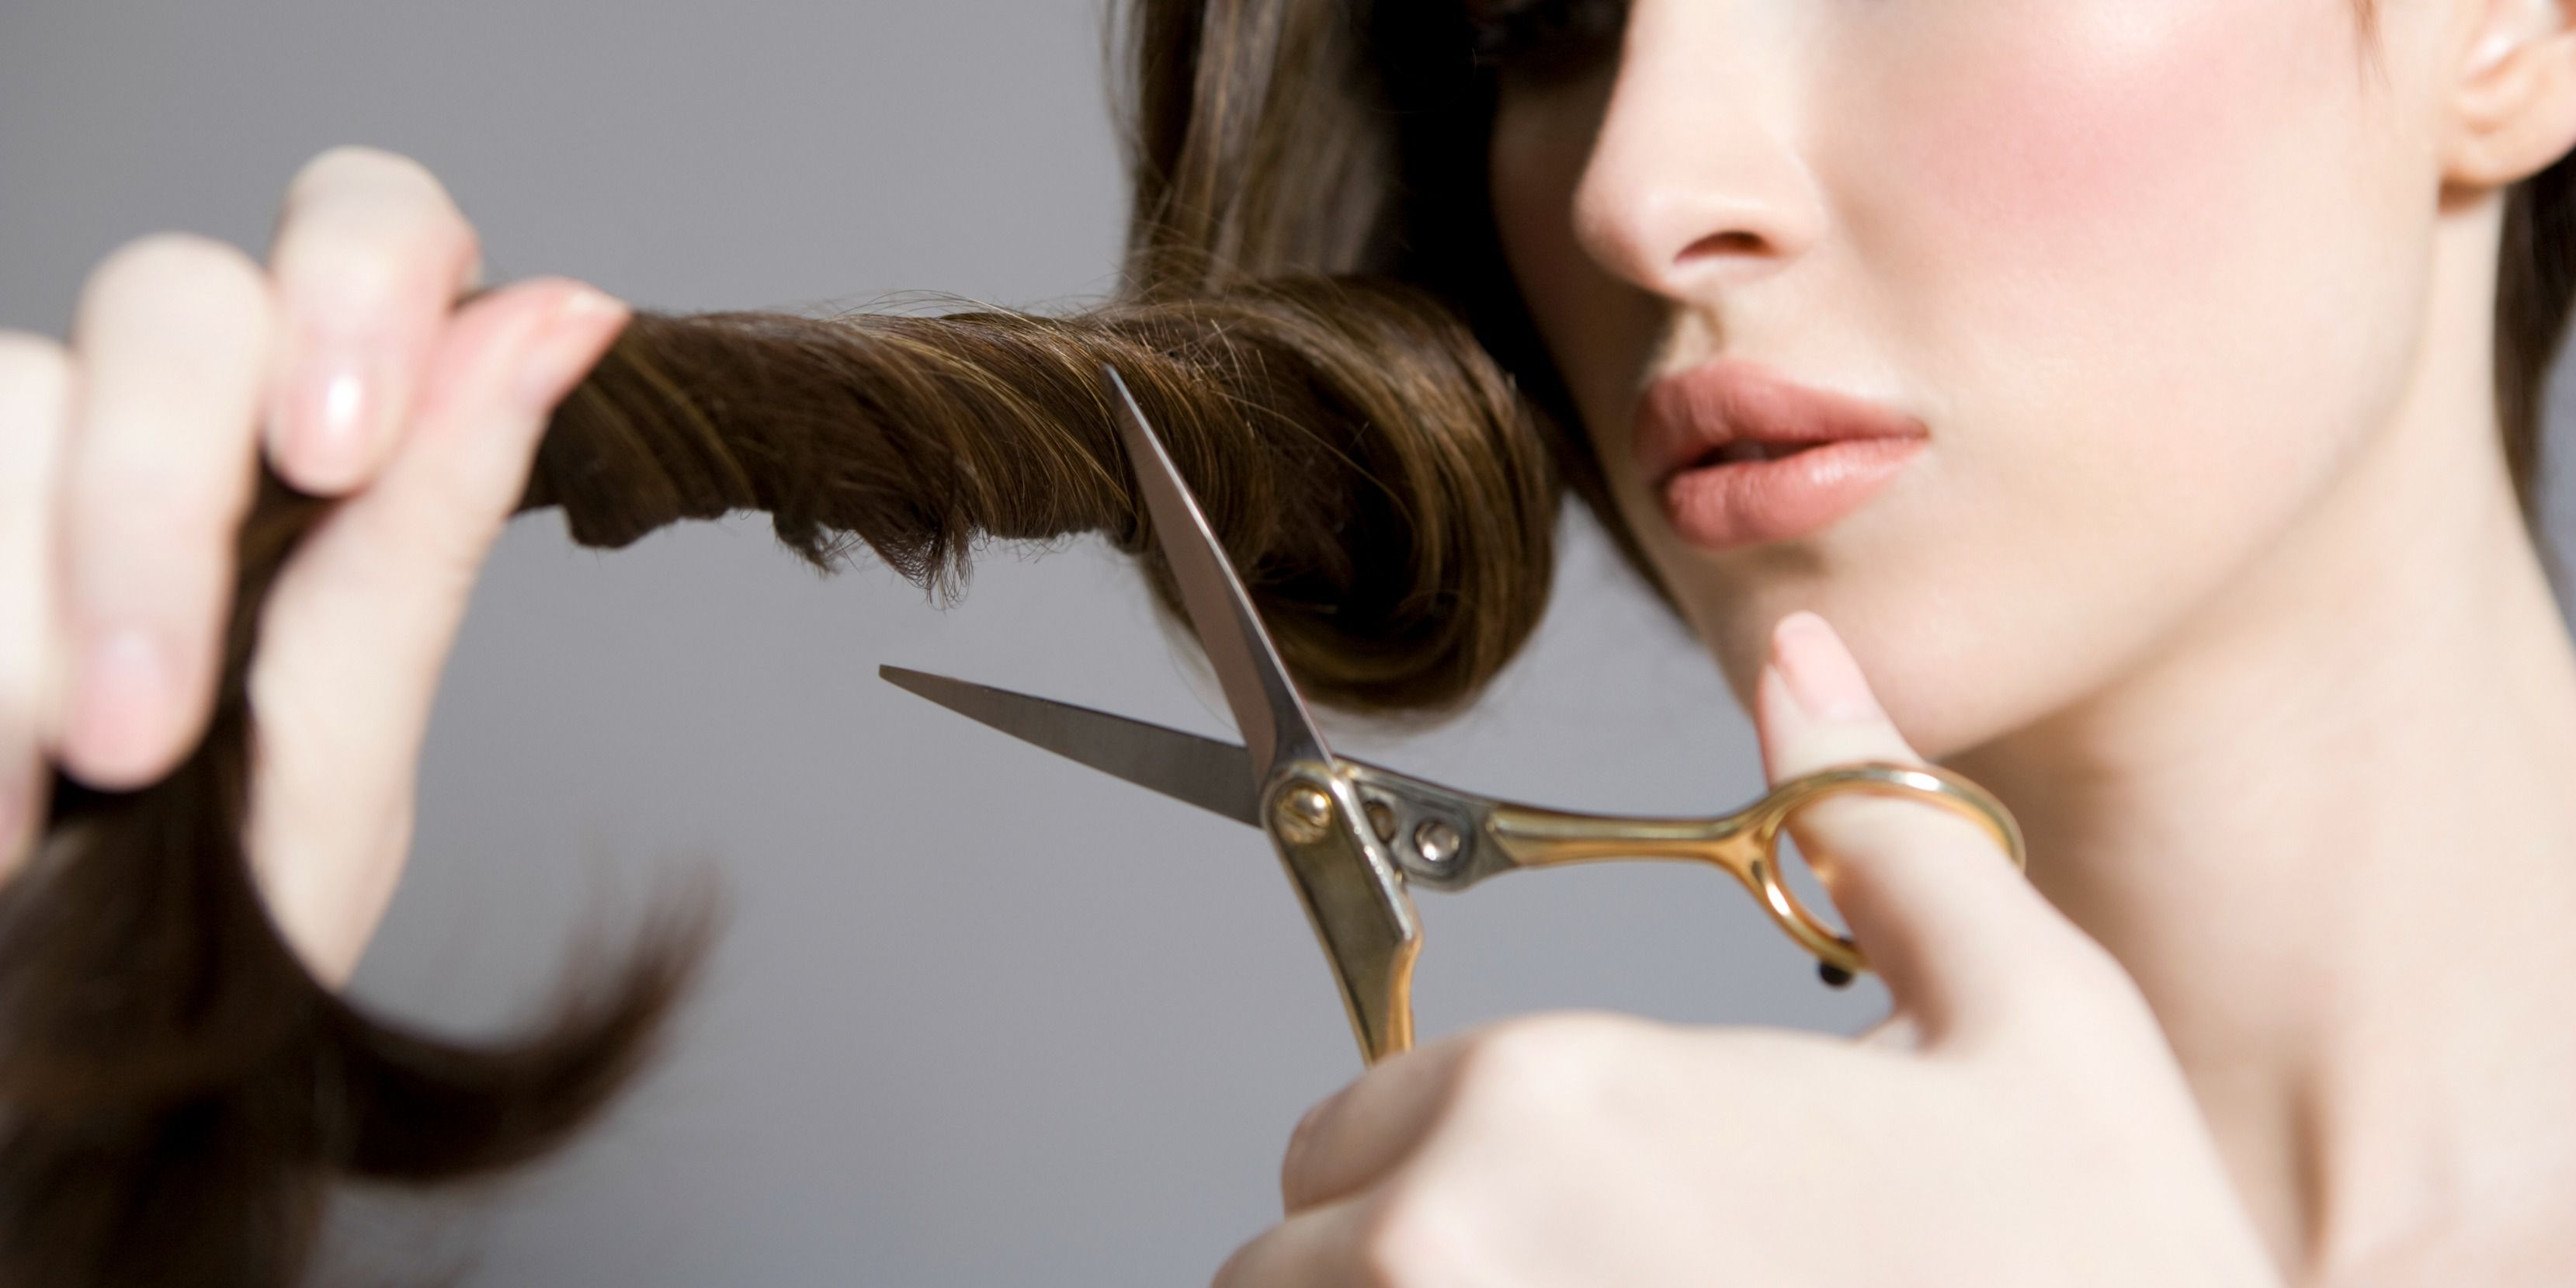 You Should Never Cut Your Own Hair Diy Haircut Advice